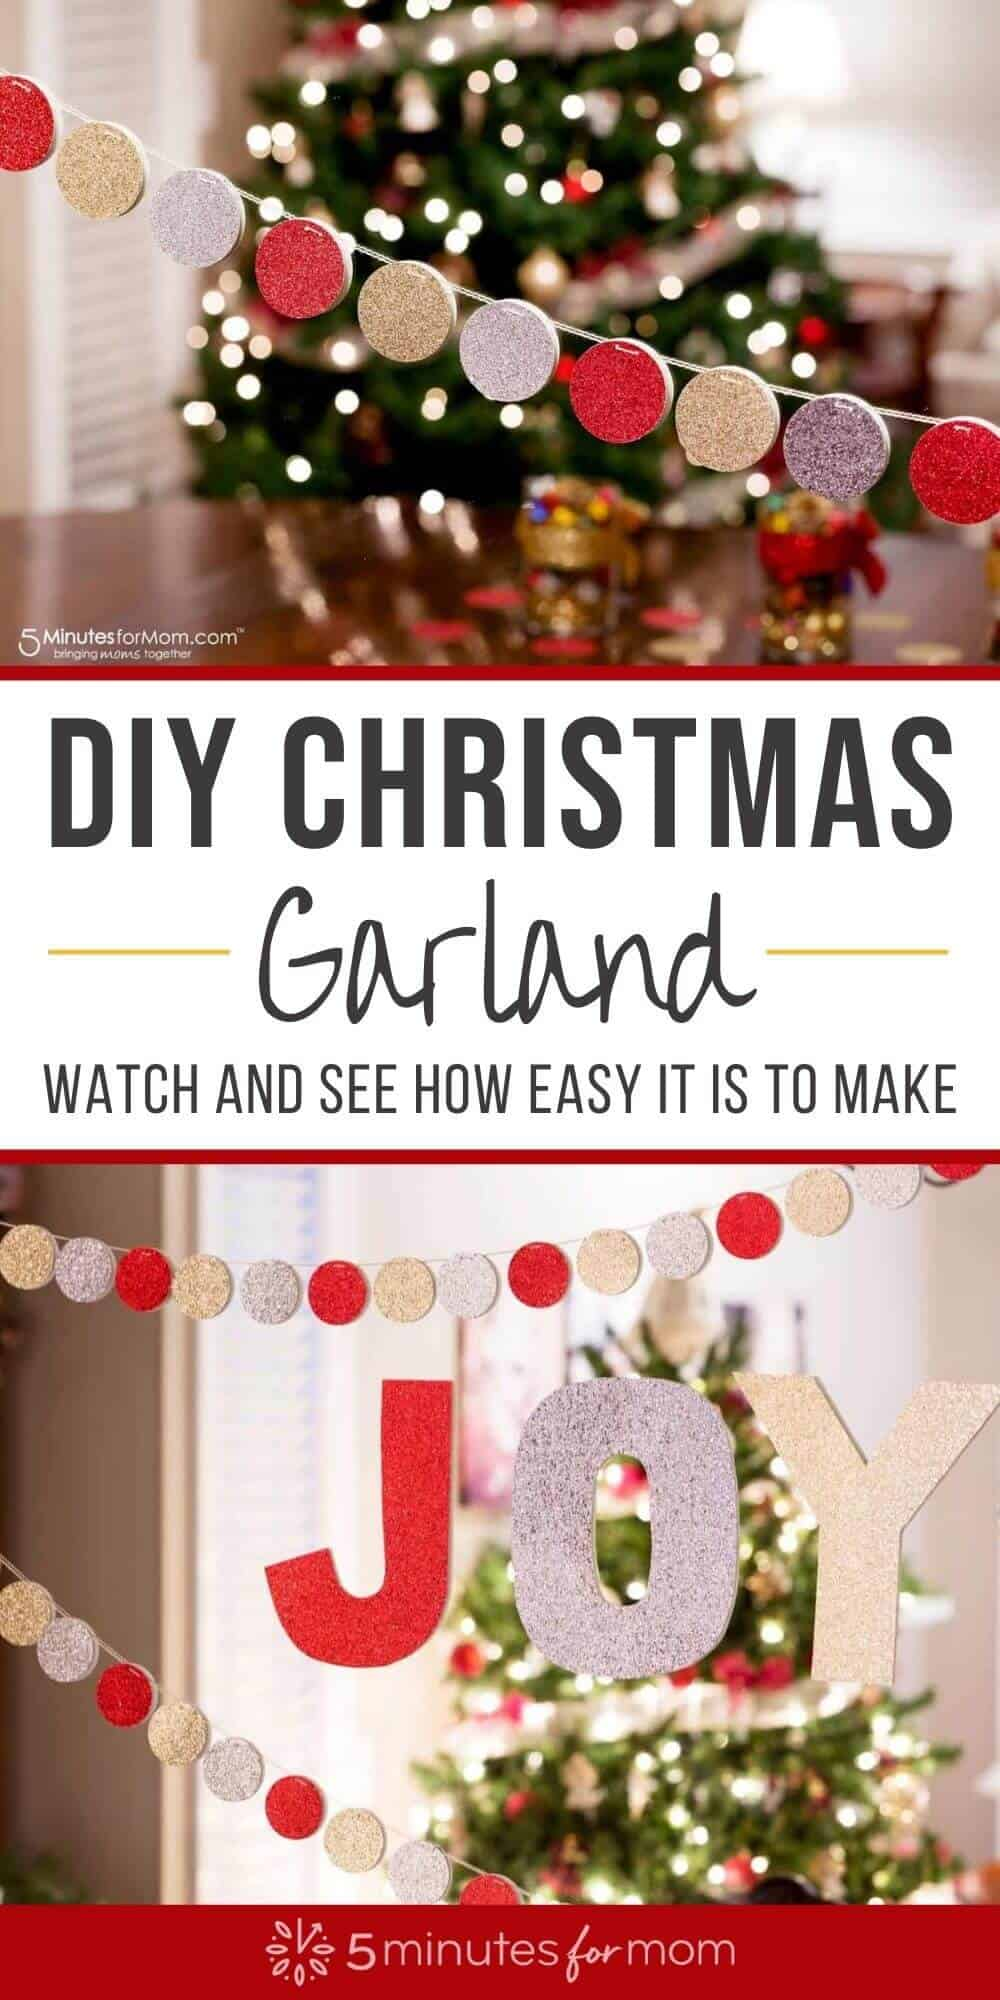 DIY Christmas Garland - With Tutorial Video